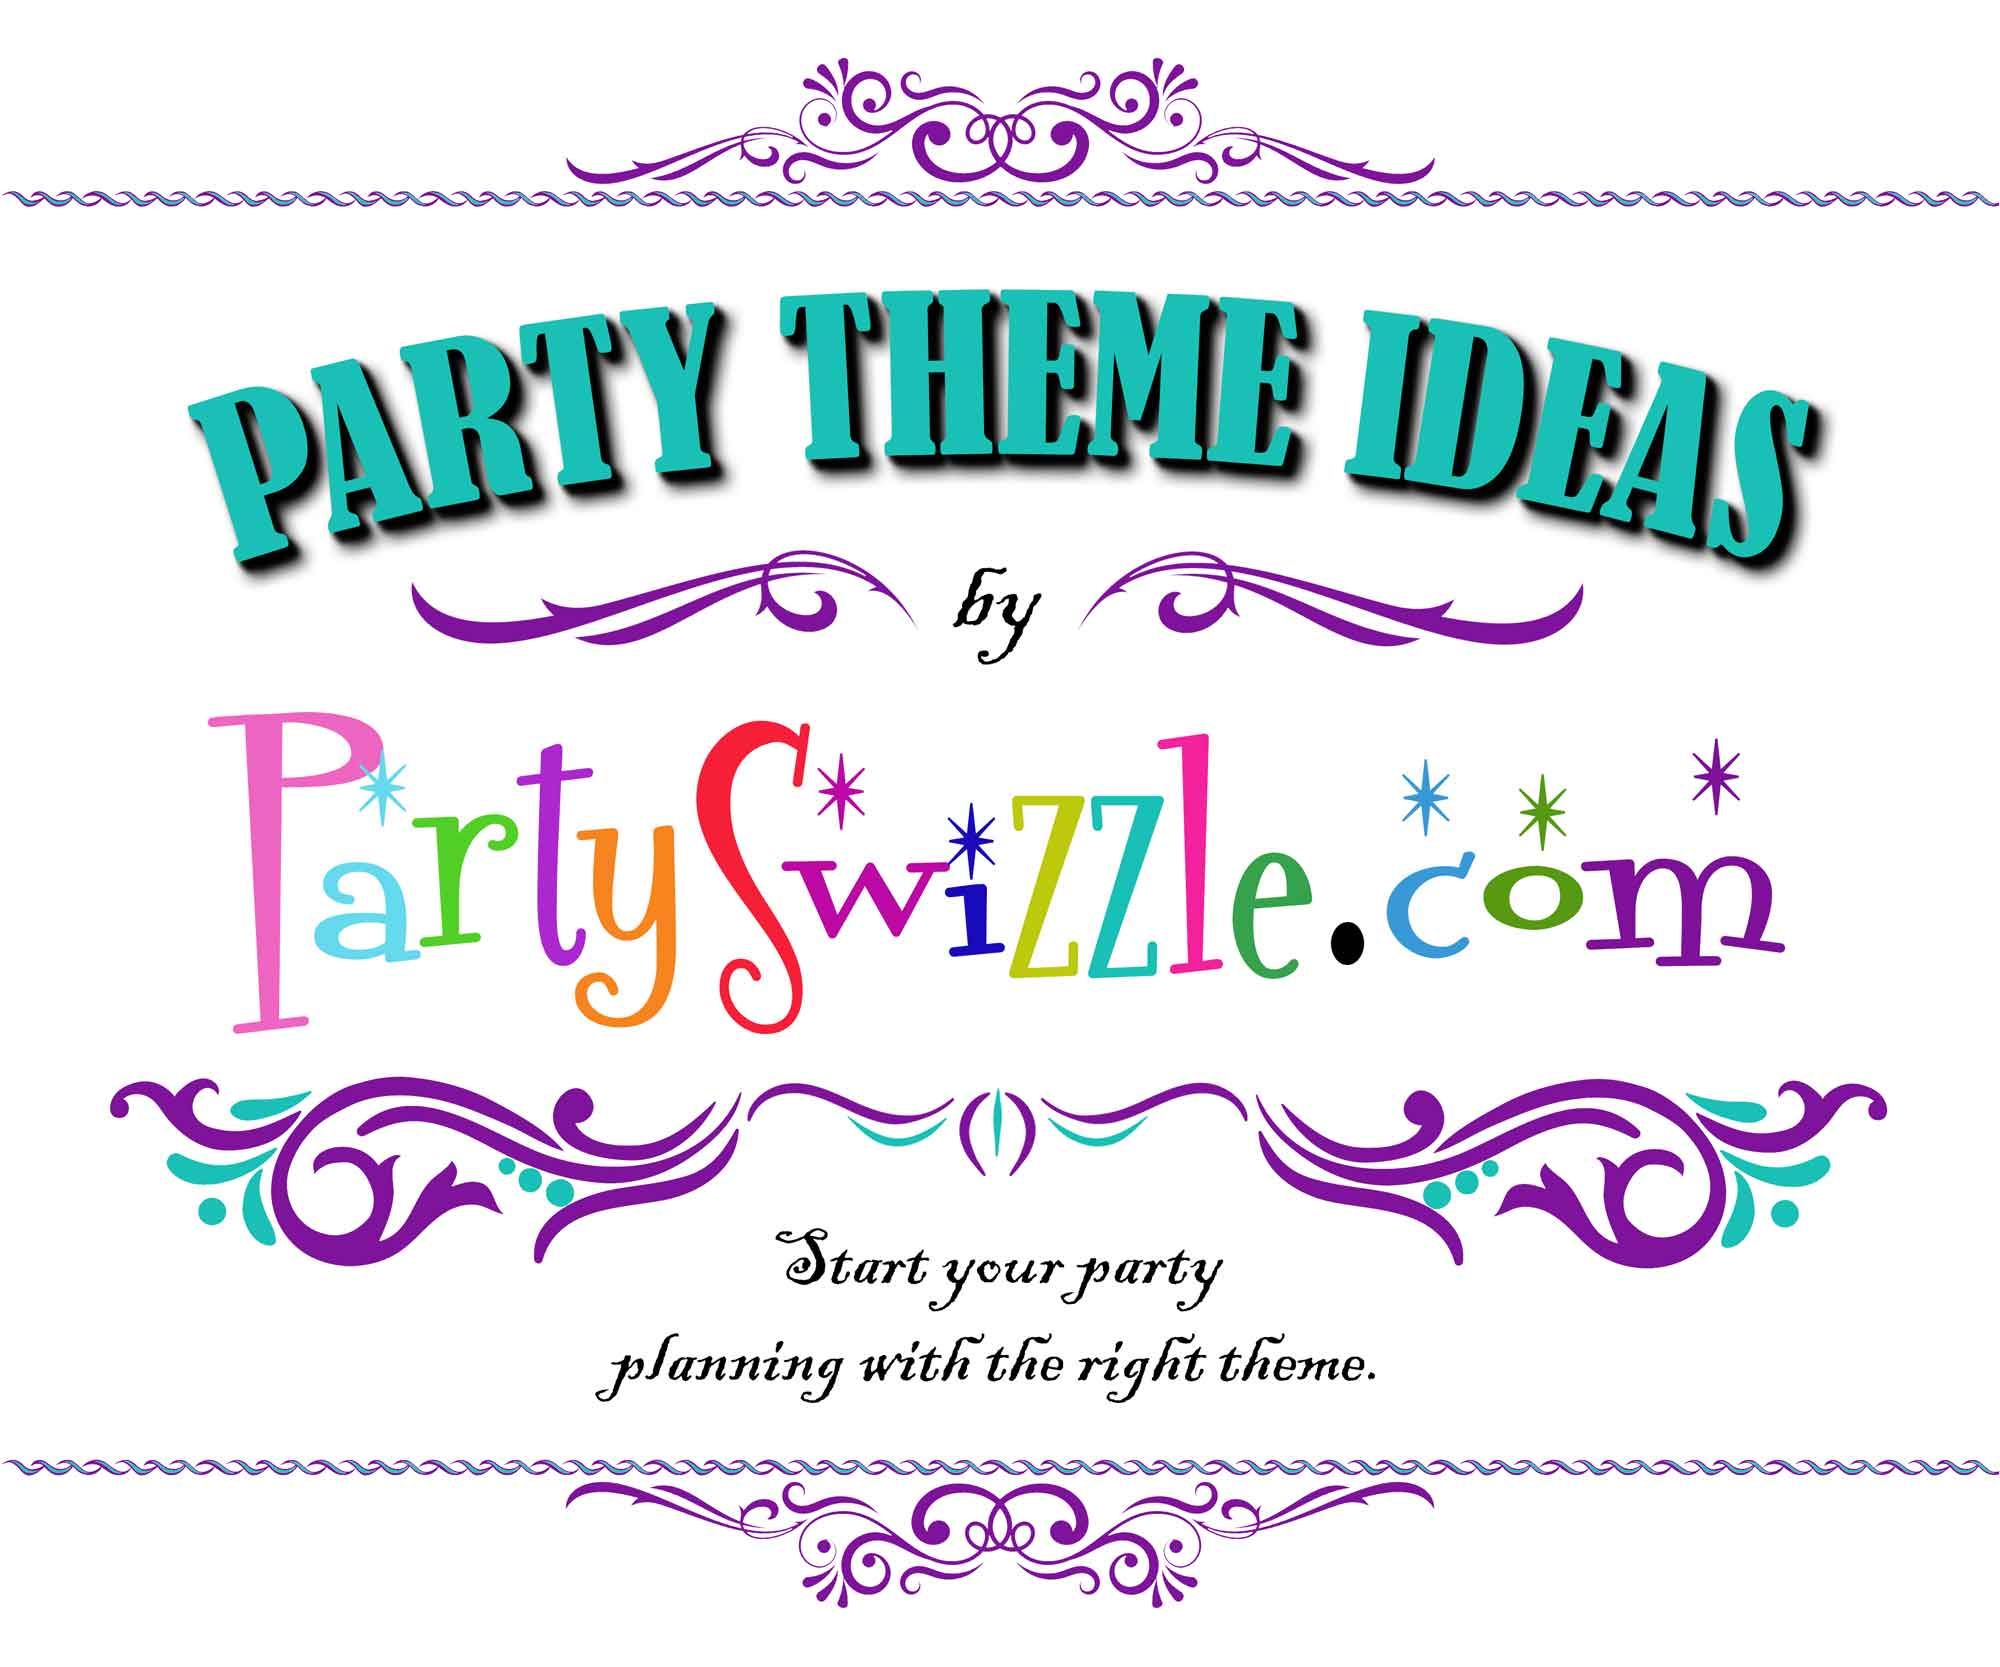 caca602547e 721 Party Themes